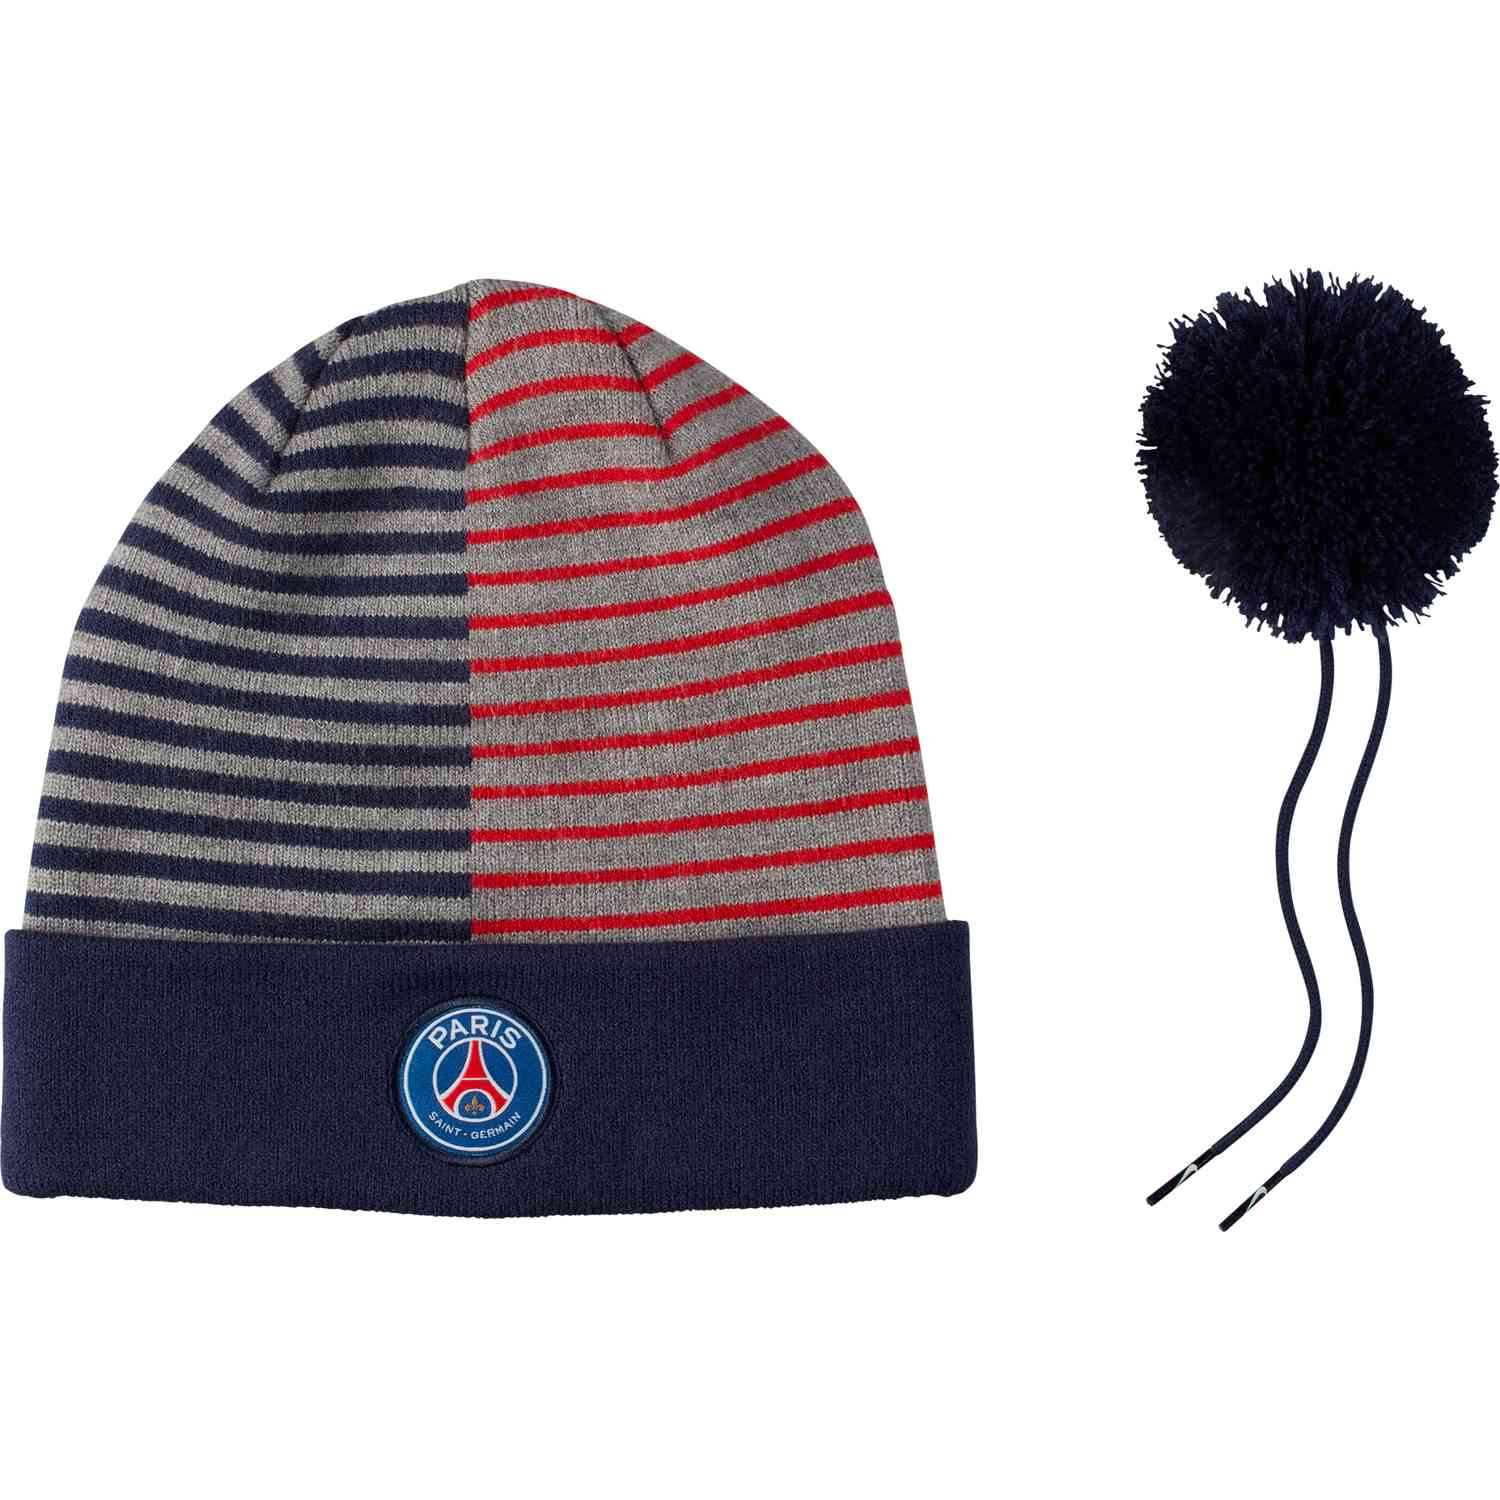 Nike PSG Striped Beanie - Midnight Navy Challenge Red - SoccerPro 5c8fd91bc1f